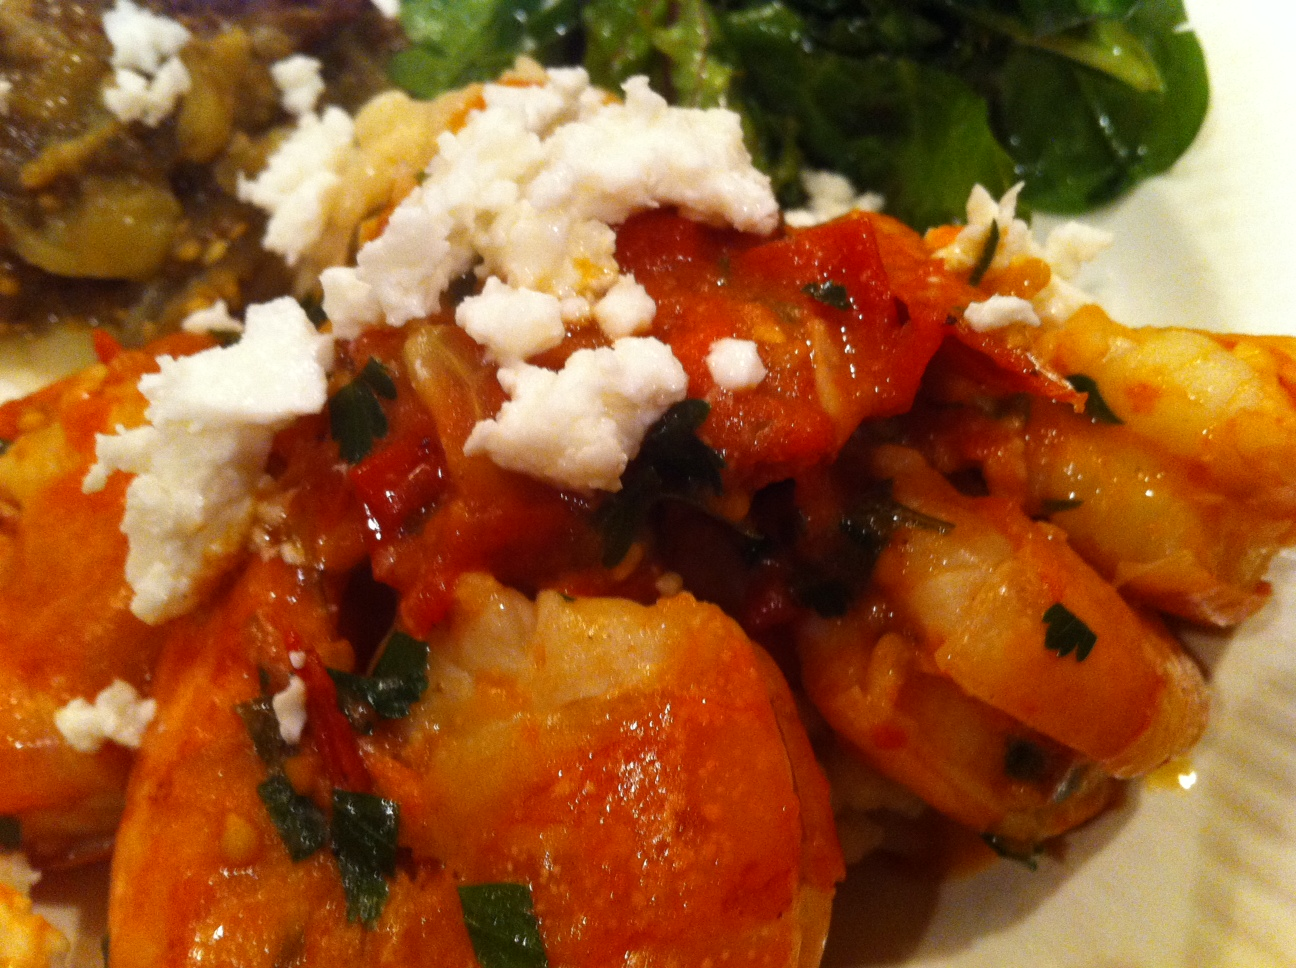 Shrimp Saganaki – Sauteed Shrimp with Tomatoes and Feta